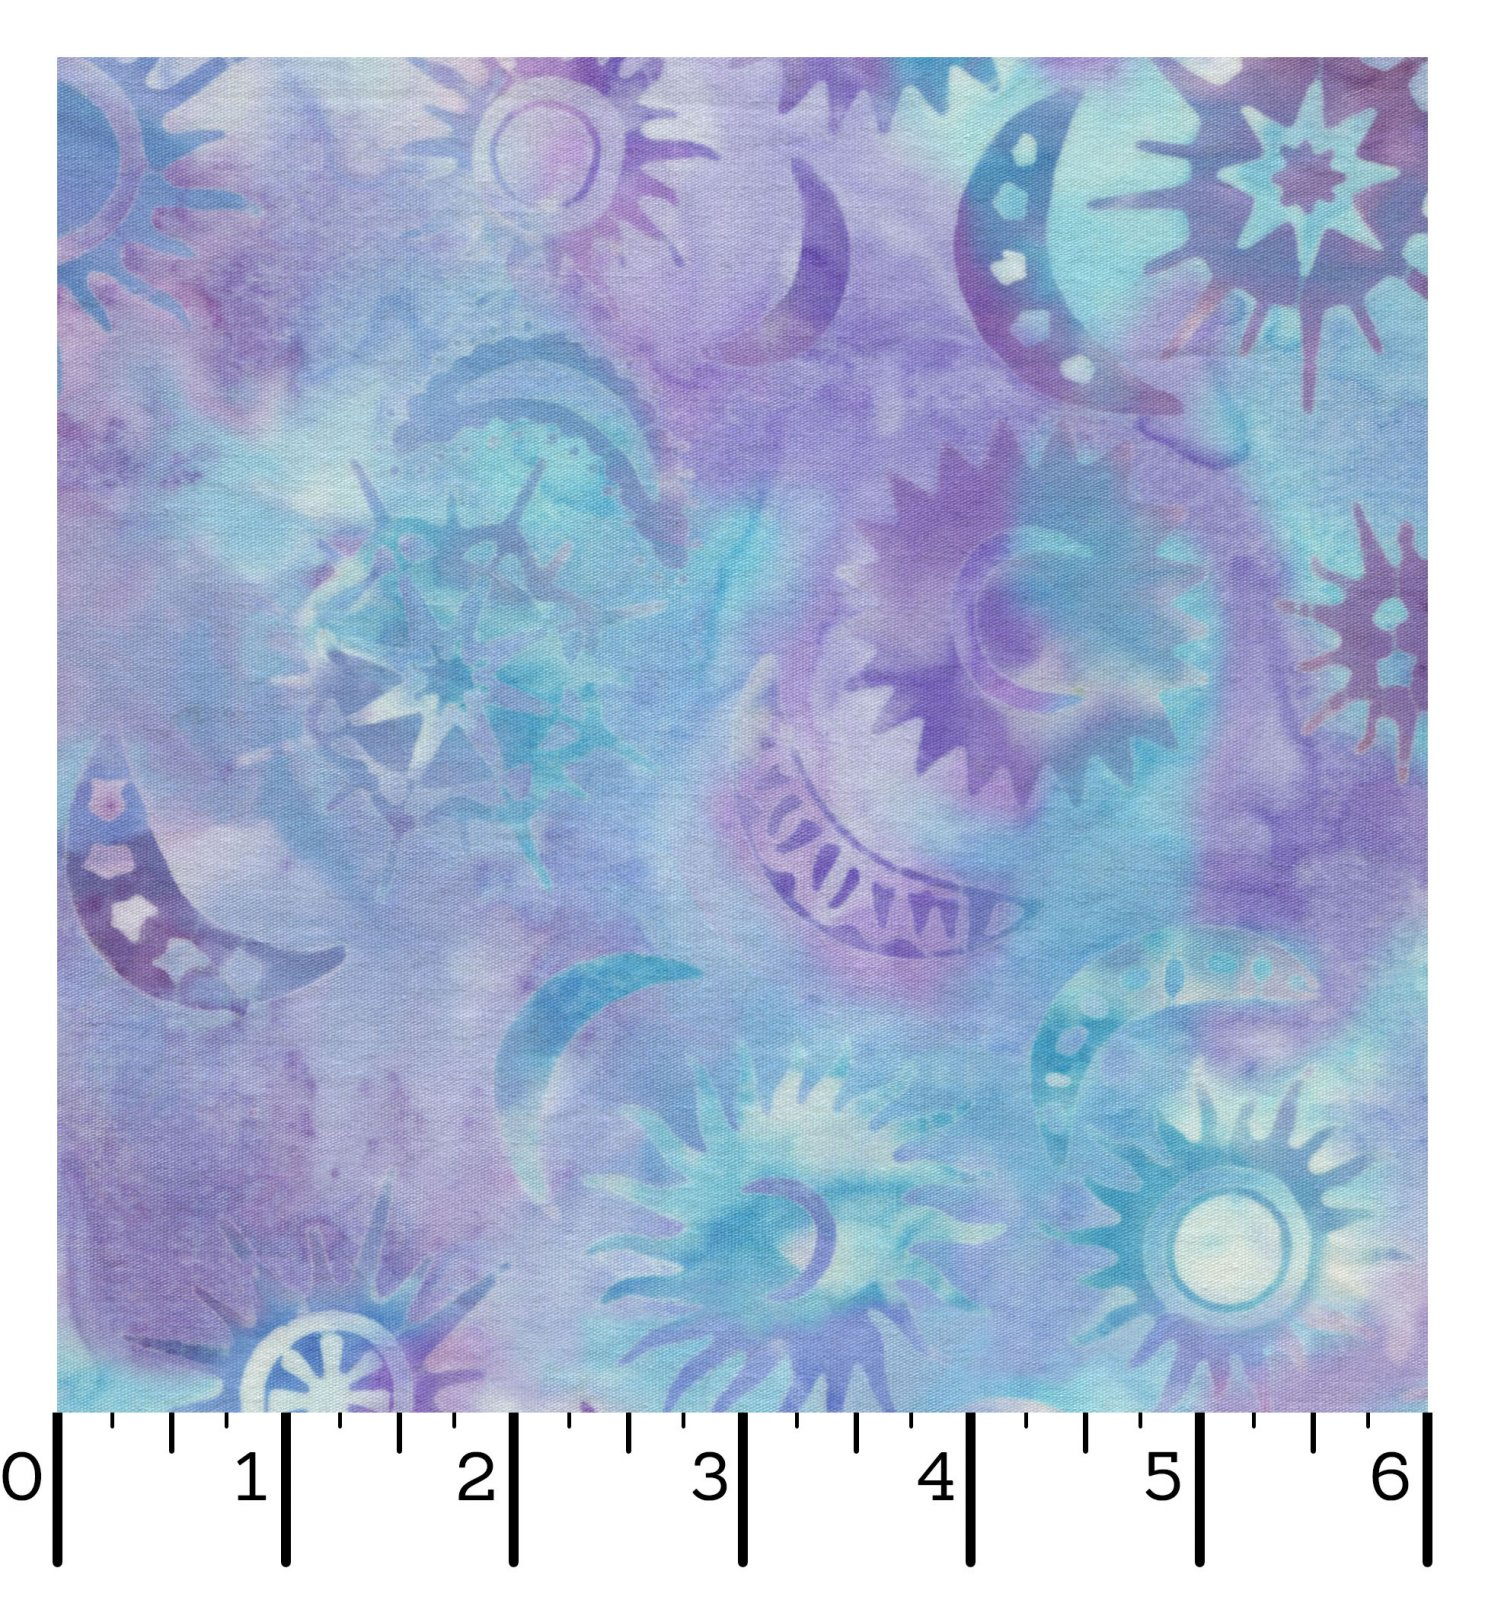 EESC-B64 BV - DUSK TO DAWN BATIKS BY MONIQUE JACOBS SUNS&MOONS TOSSED BLU/PUR - ARRIVING IN JANUARY 2022